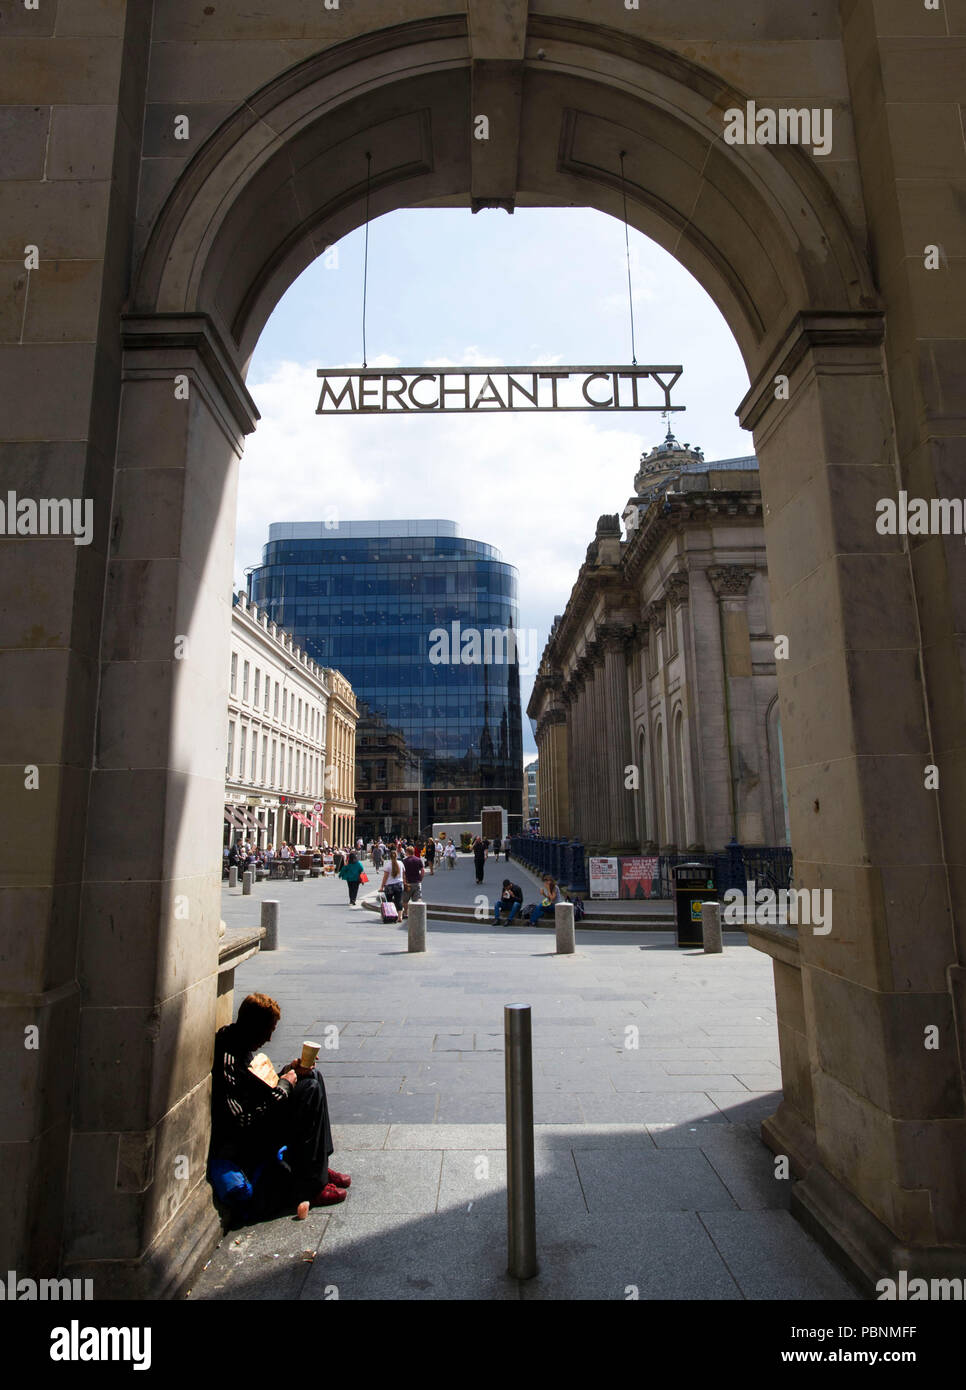 Archway to the Merchant City in Glasgow city centre. - Stock Image